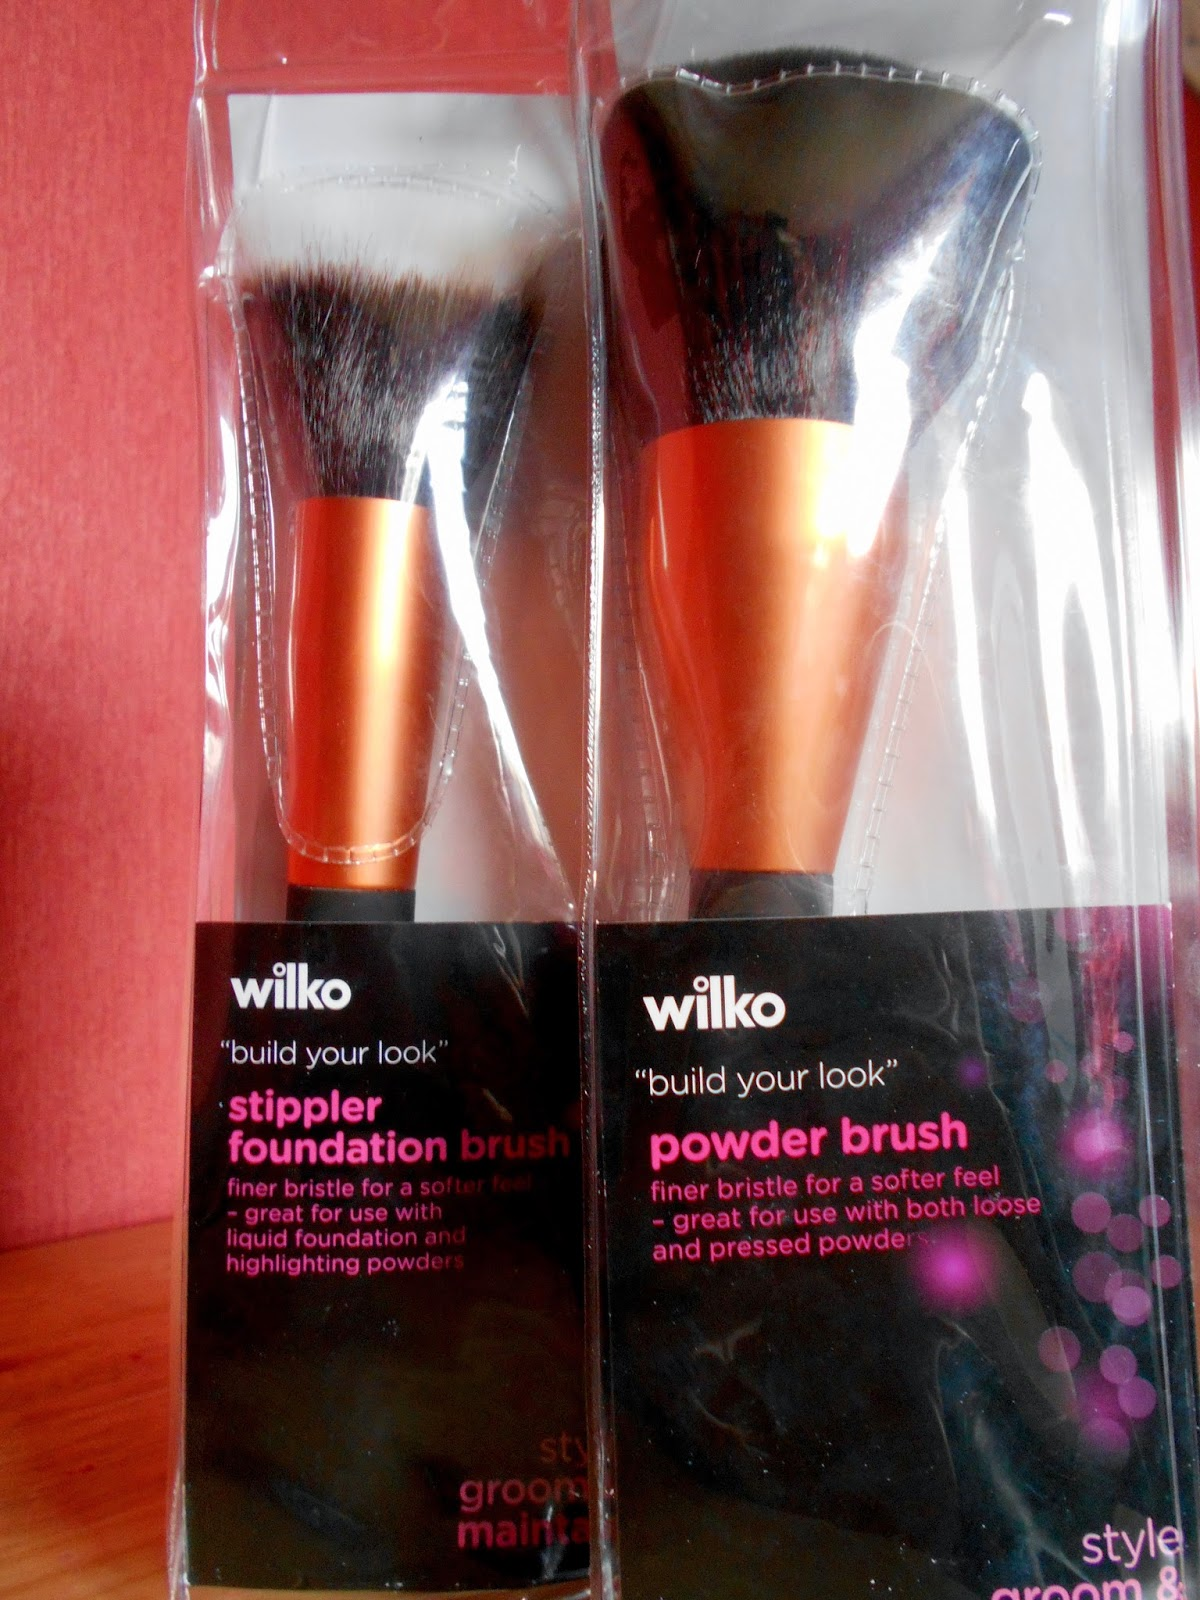 Wilkinsons Make-up Brushes - Powder Brush and Stippler Foundation Brush